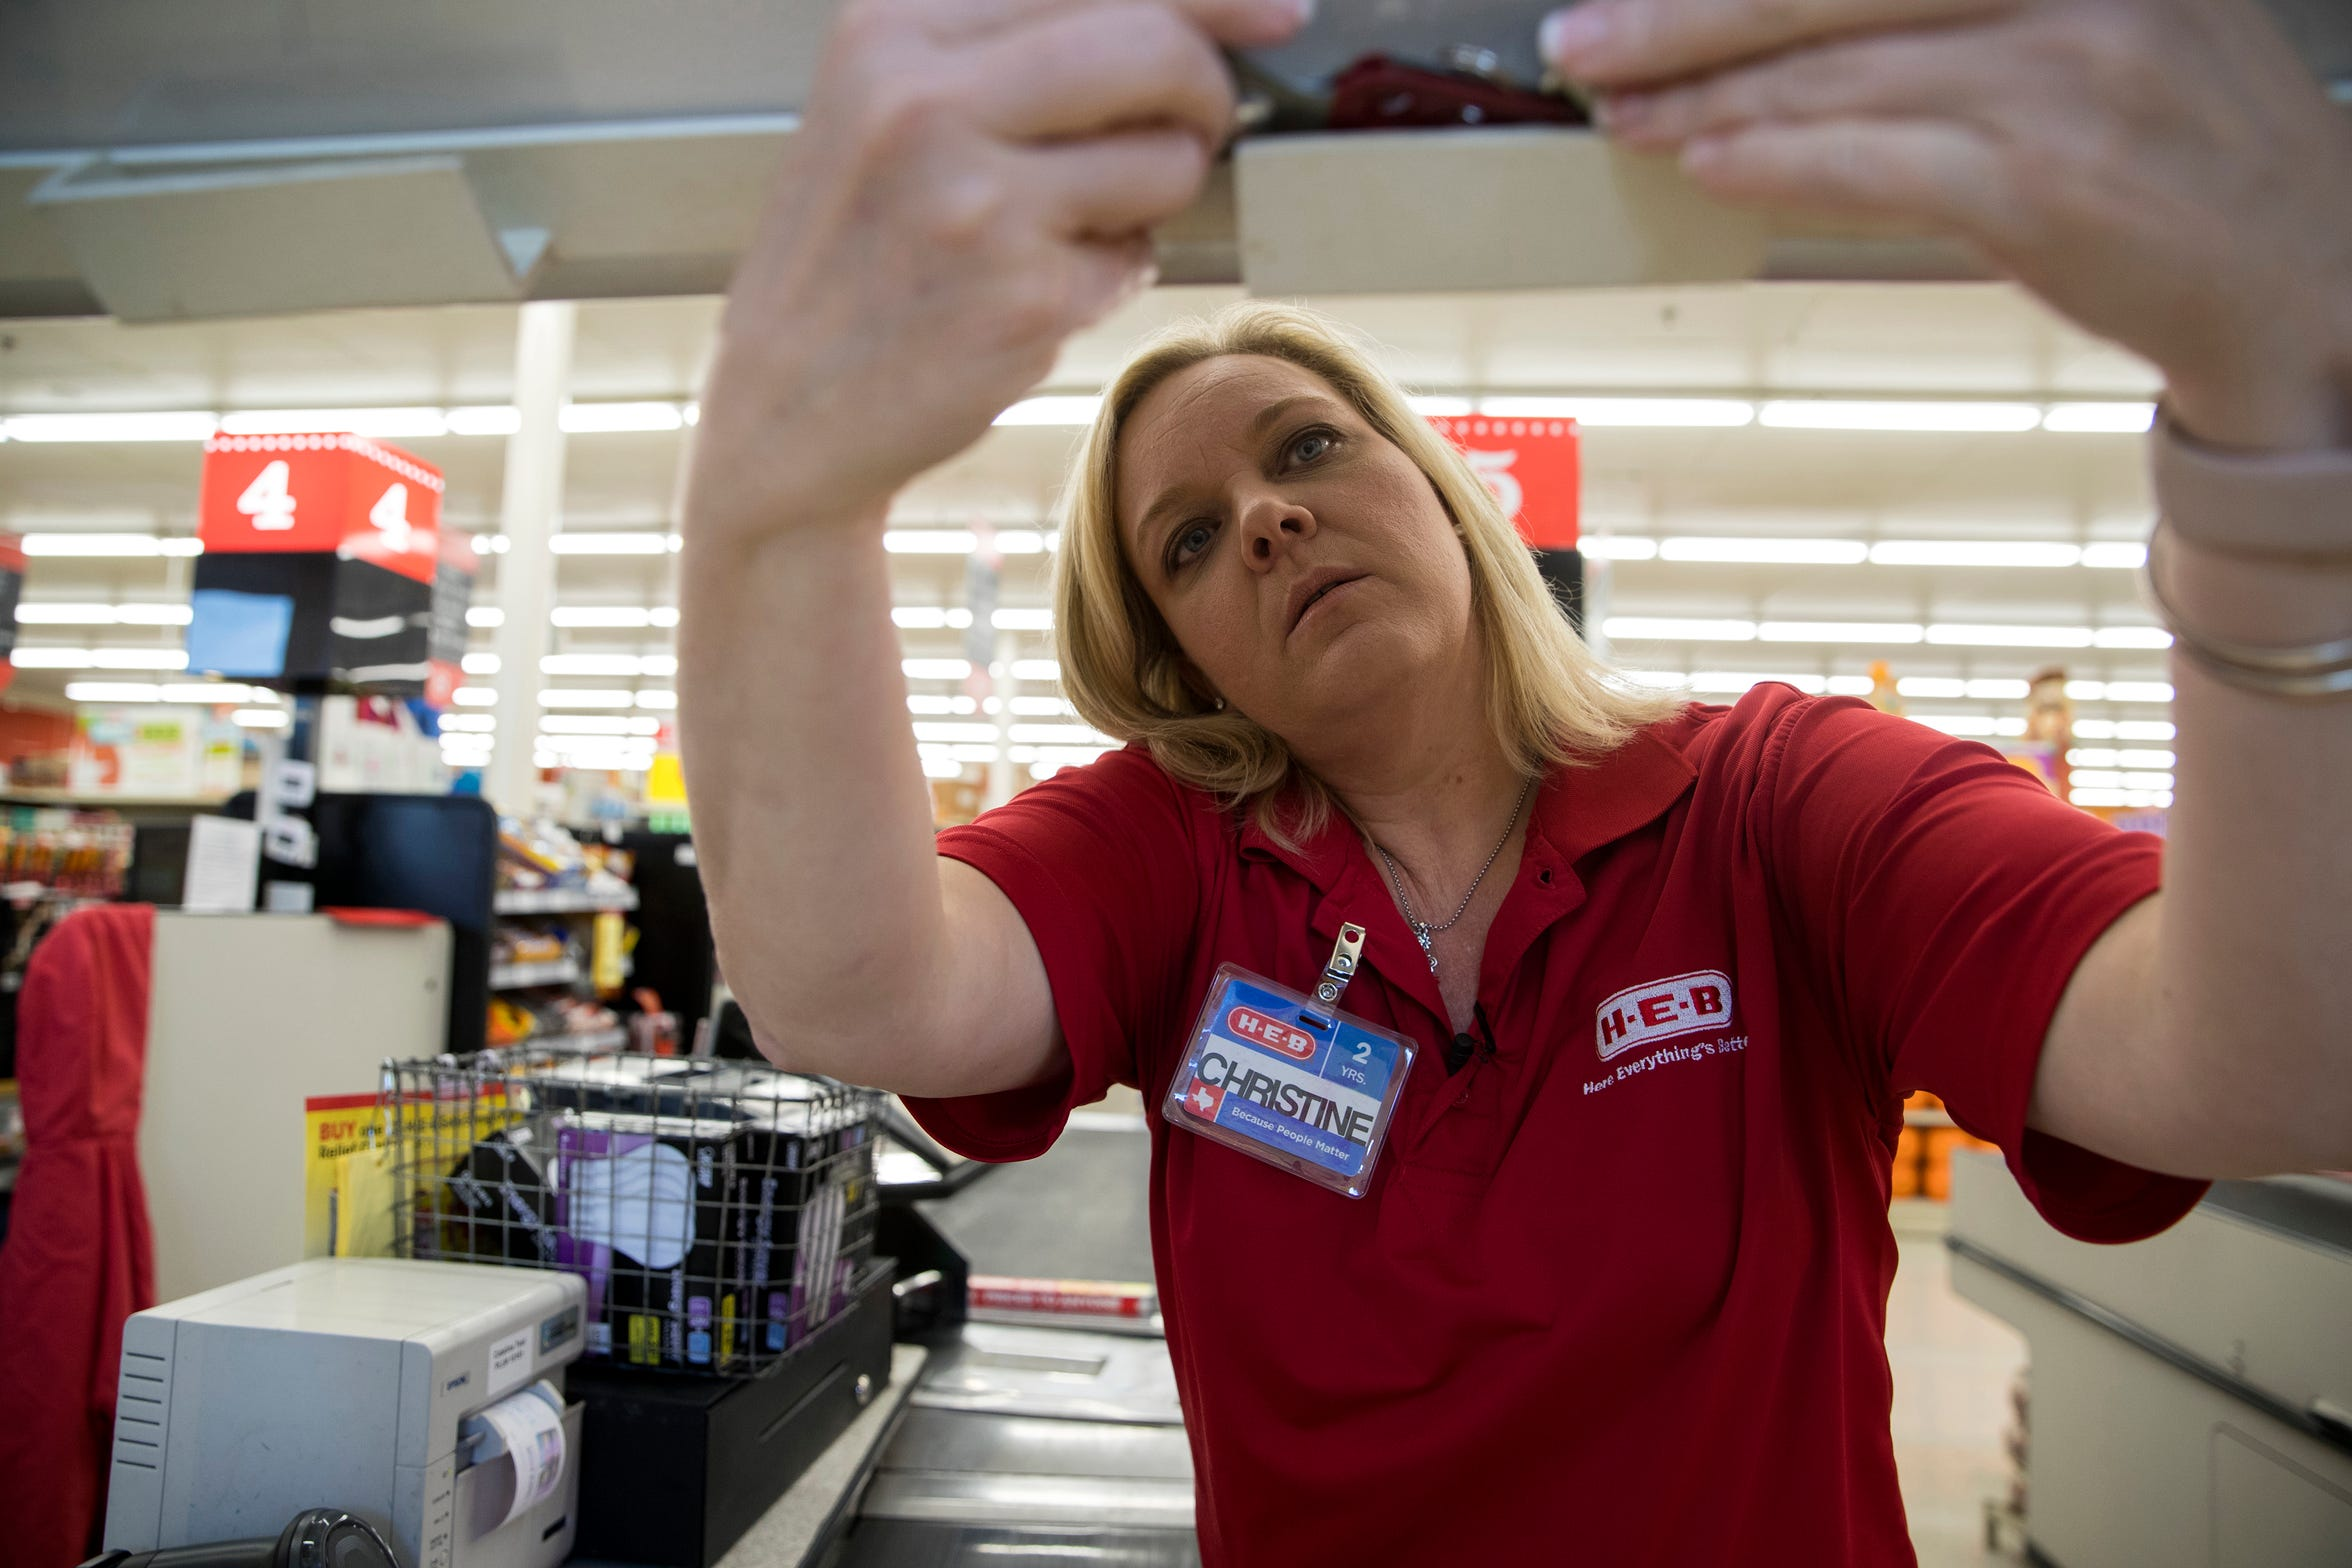 "Christine Kidd McFarland, a fifth-grade teacher at Sinton Elementary School in Sinton, Texas, rubs her neck as she waits for a customer to check out at H-E-B, a grocery store, on Monday, September 17, 2018. Three years ago, she said she applied for free or reduced lunch for her son. ""I'm a teacher. And I qualified for reduced lunch. What does that say?"""